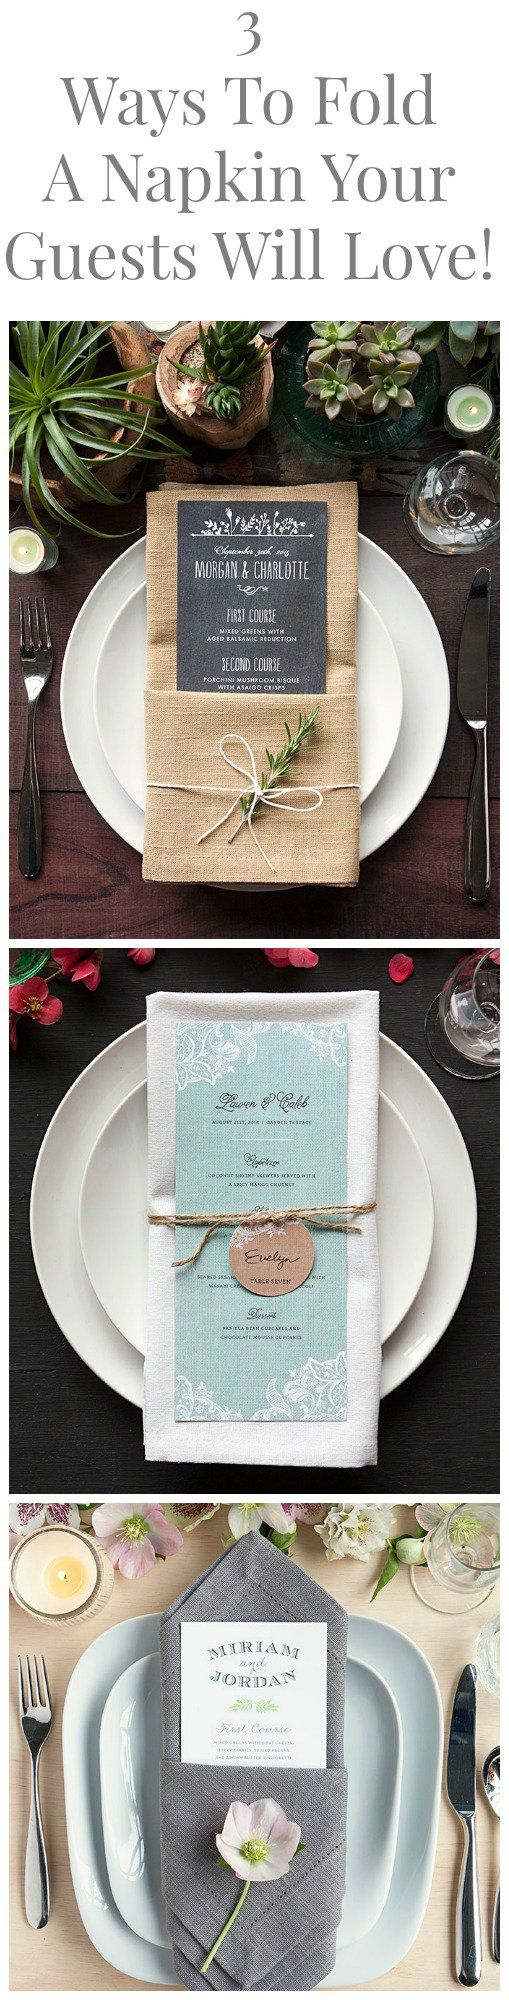 3 Great Ways To Fold A Napkin For Your Dinner Party or Wedding That Will Stun Your Guests